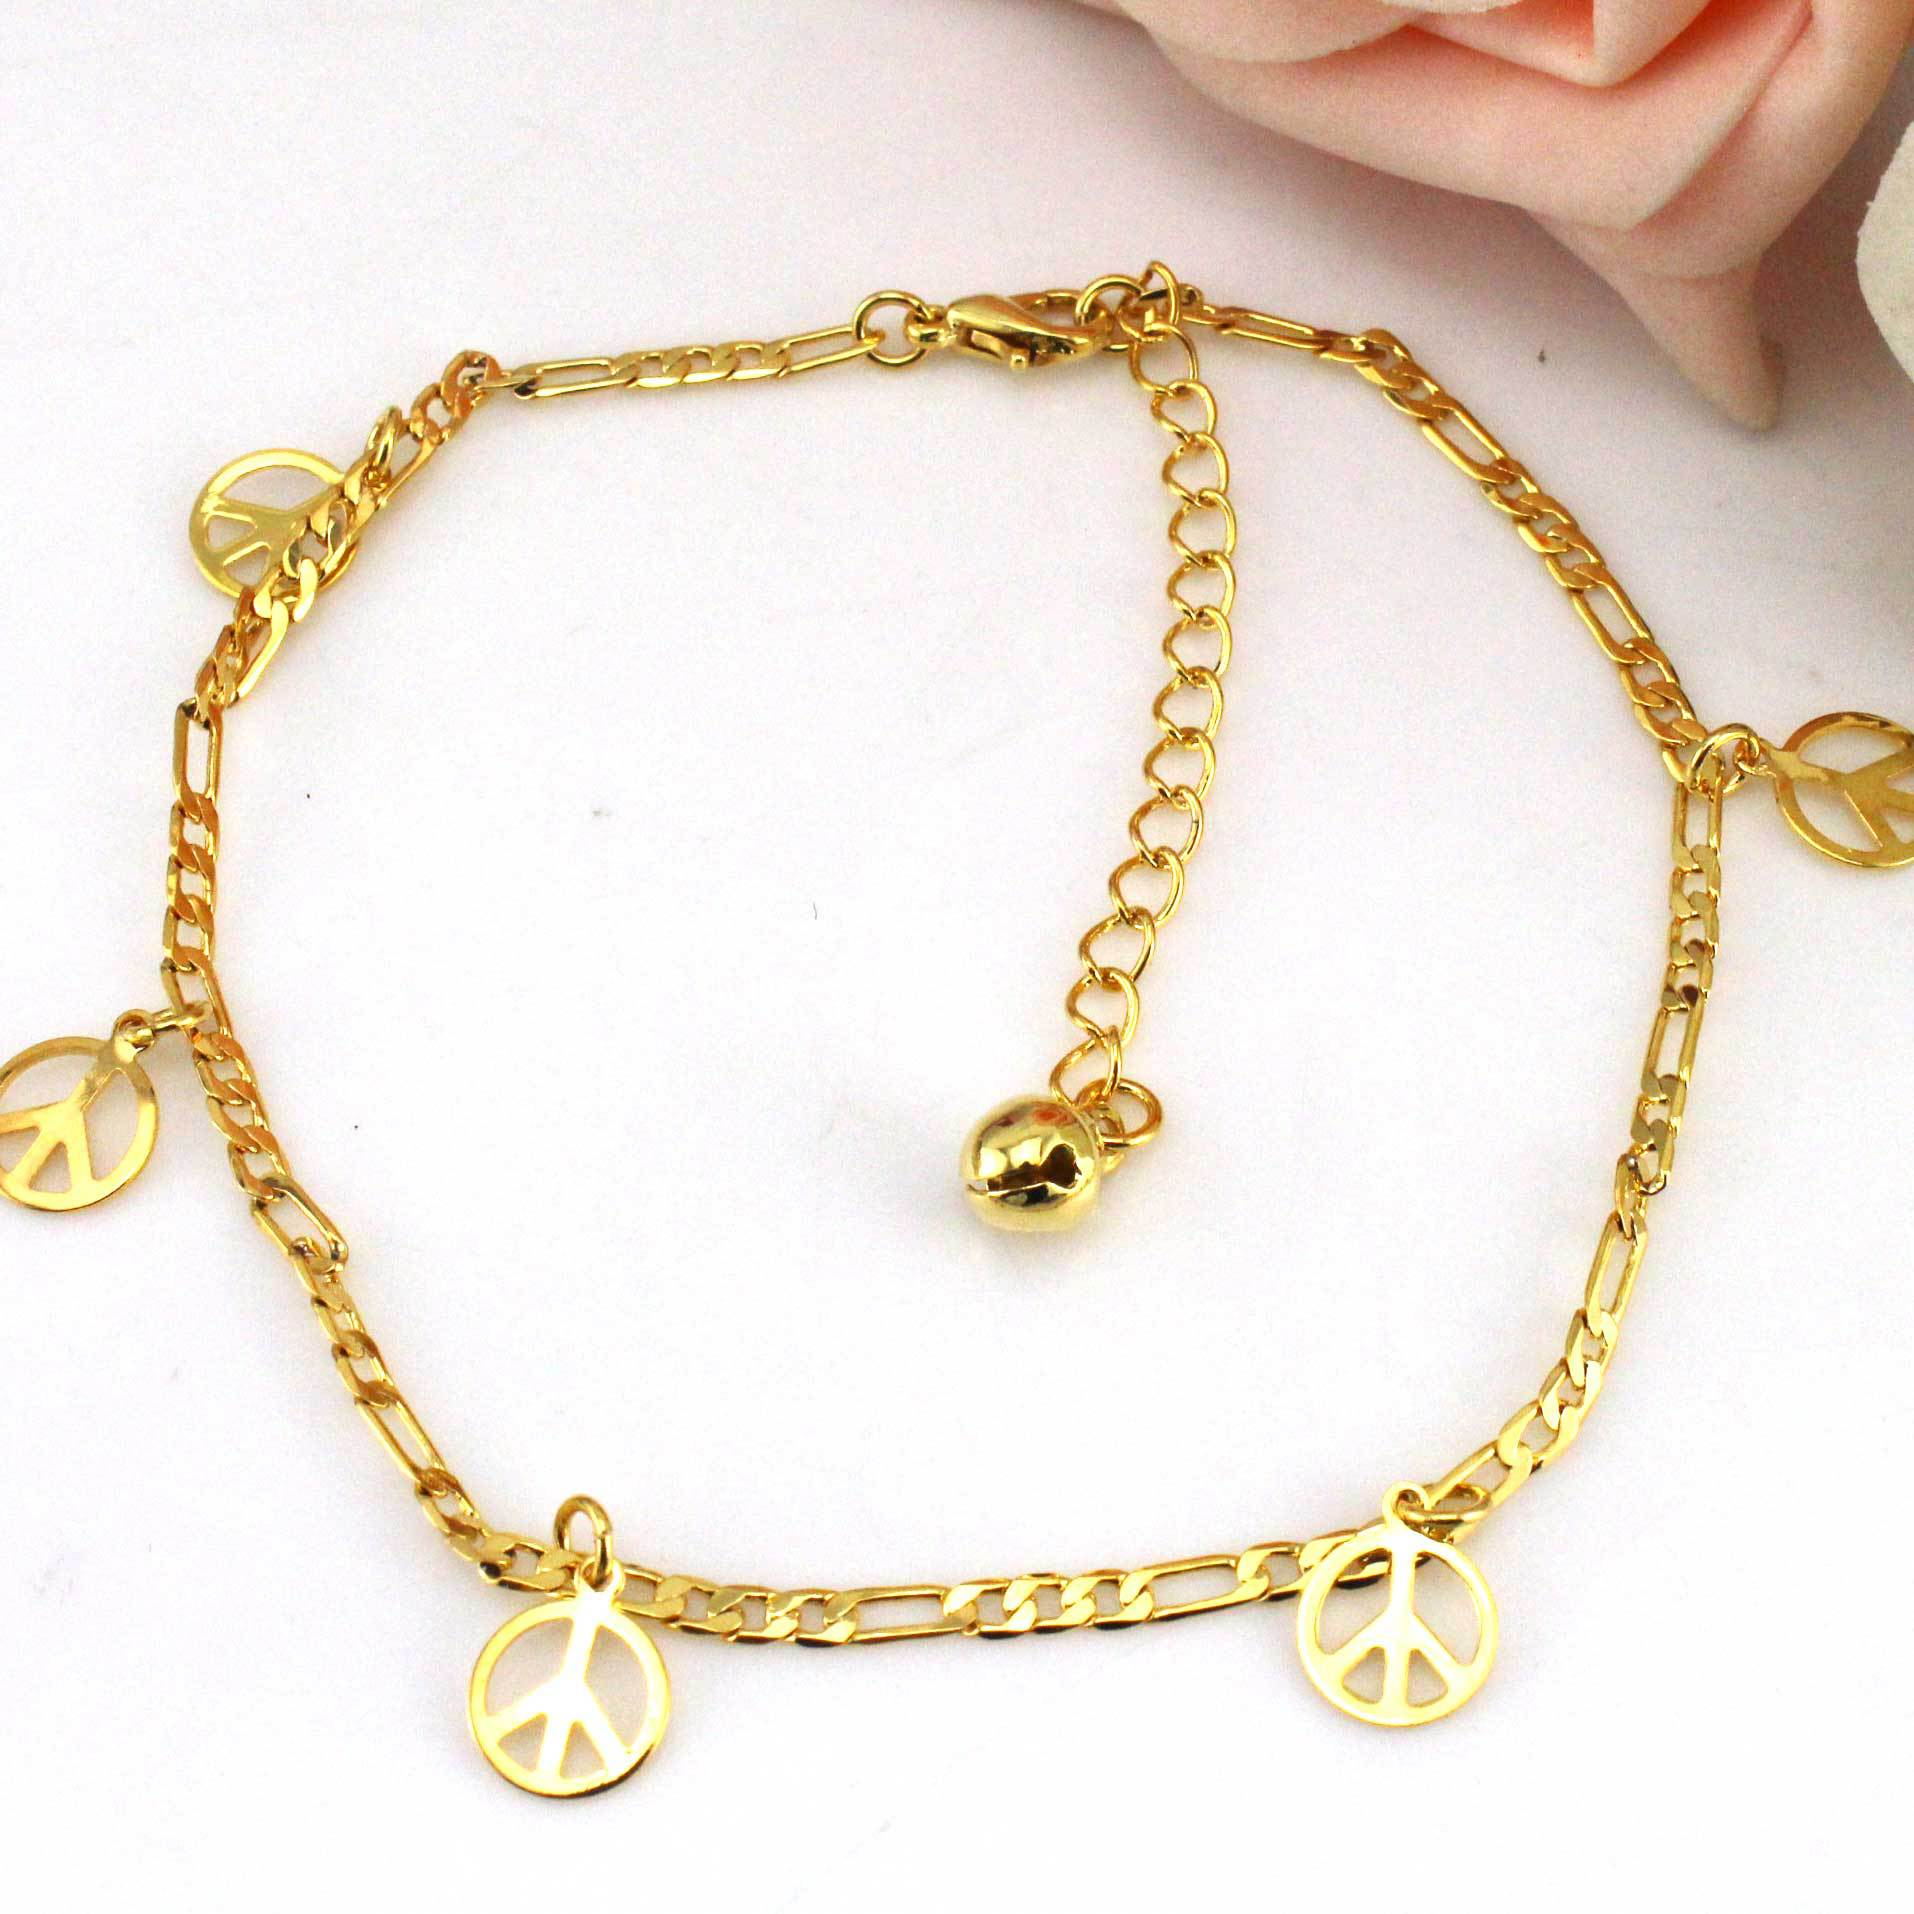 p love anklets bracelet wedding gift anklet jewellery infinity jewelry gold ksvhs beach summer bridesmaid infinite fancy ankle